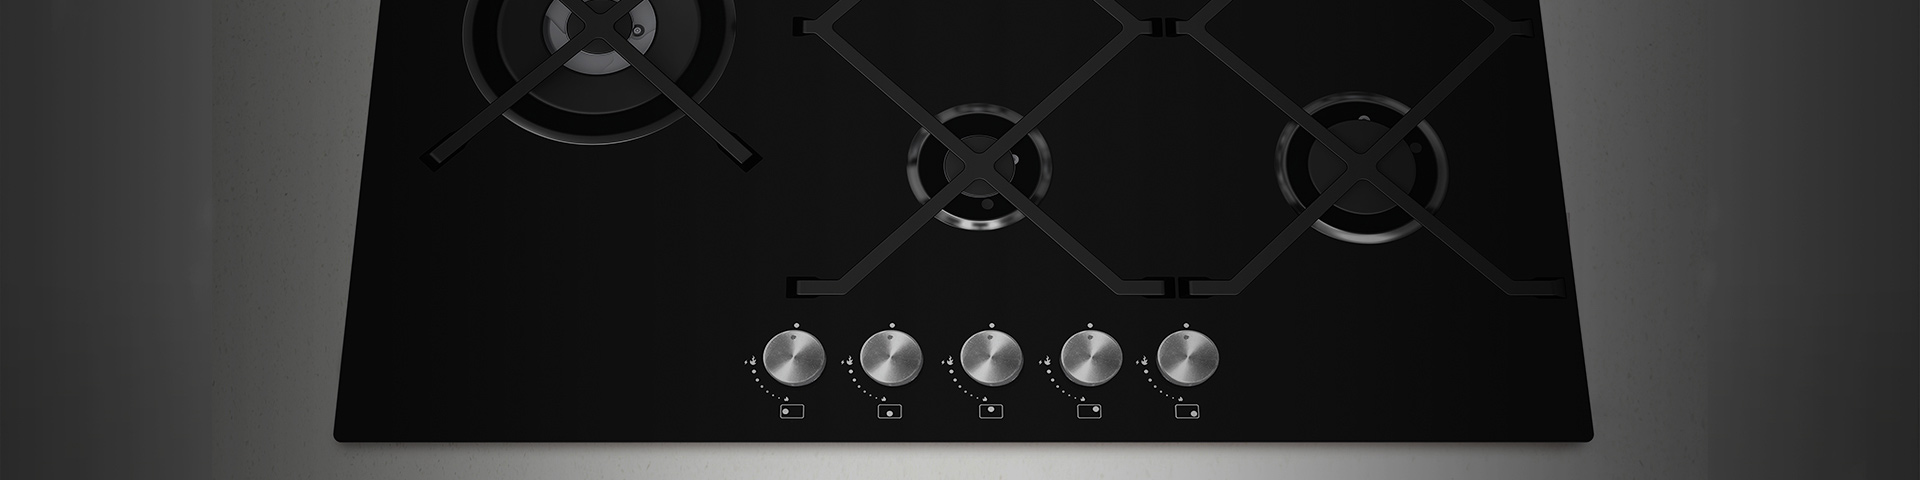 gas-cooktop-banner-sept